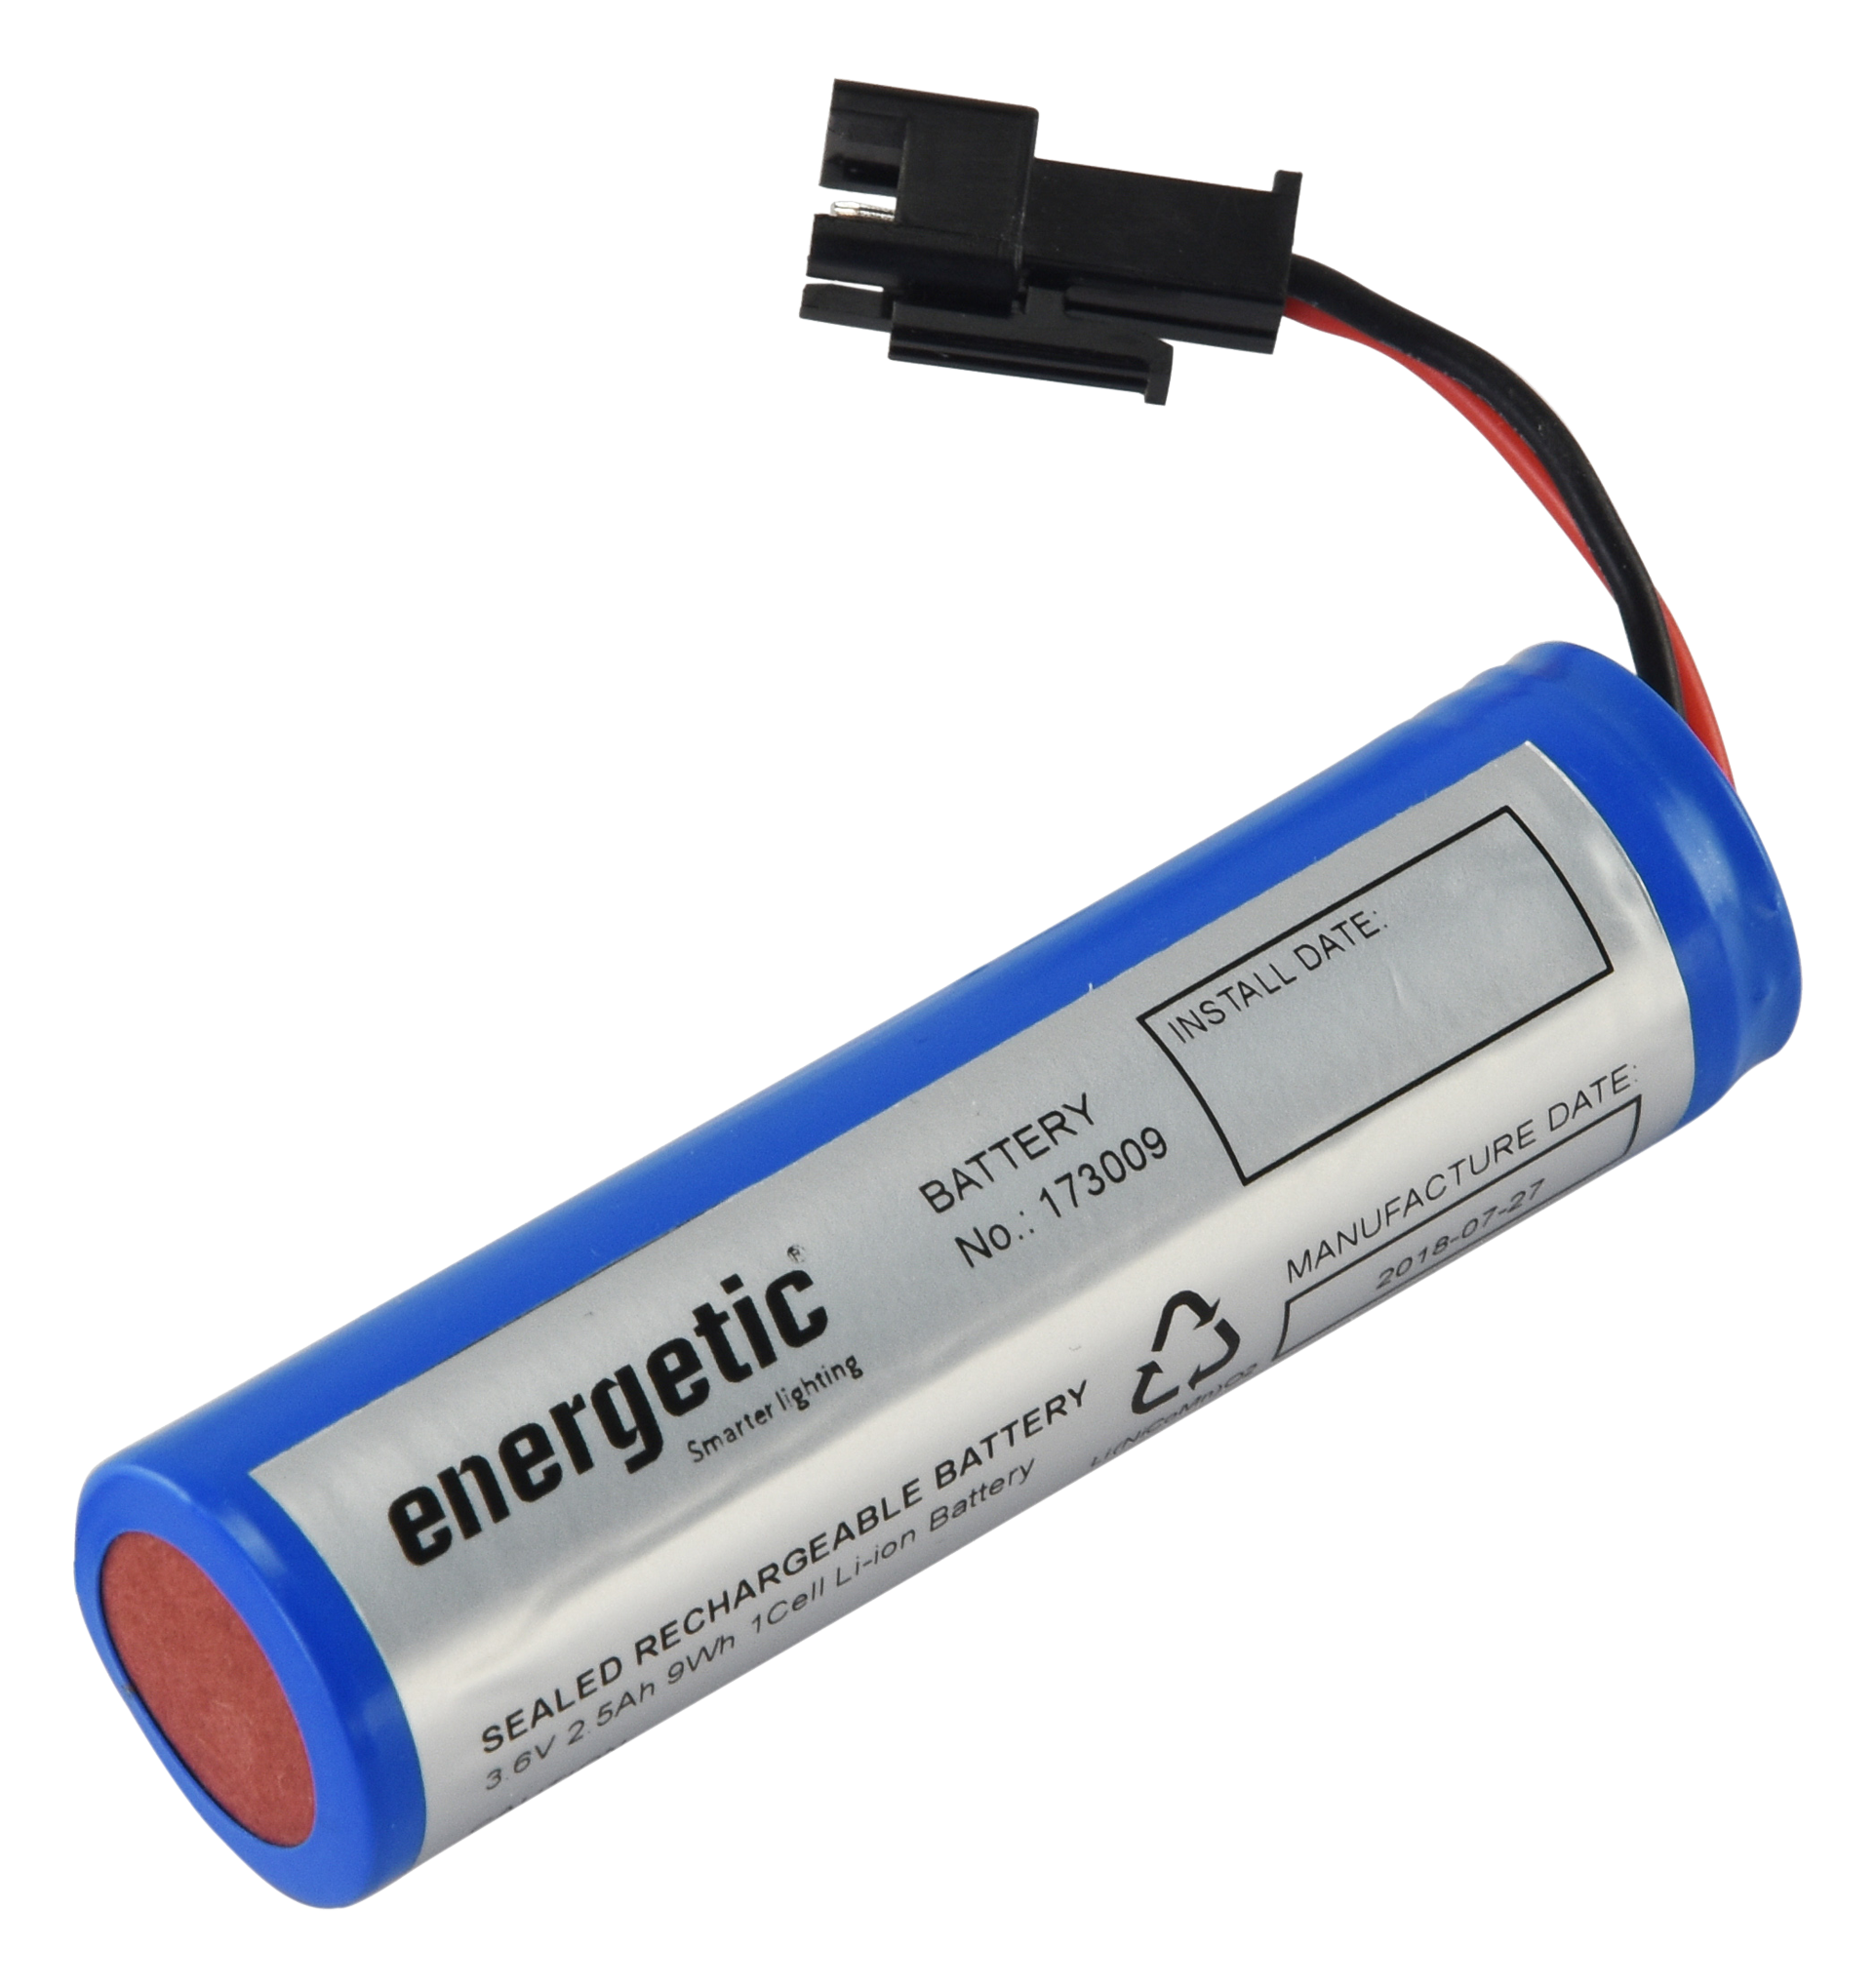 Emergency Downlight Battery Lithium Battery (3.6V)